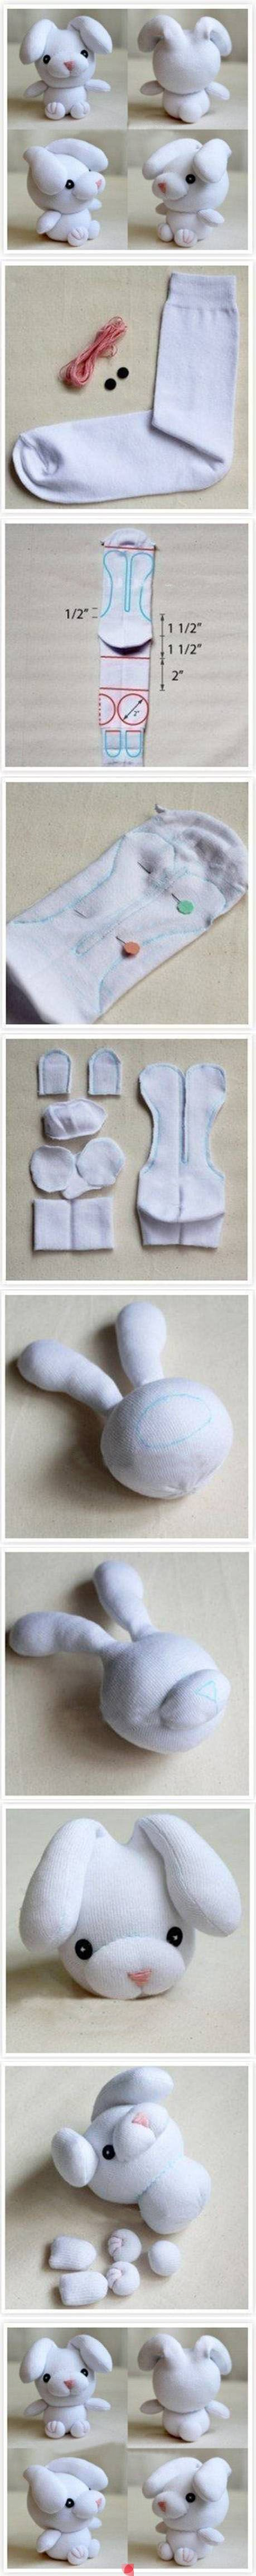 step by step bunny